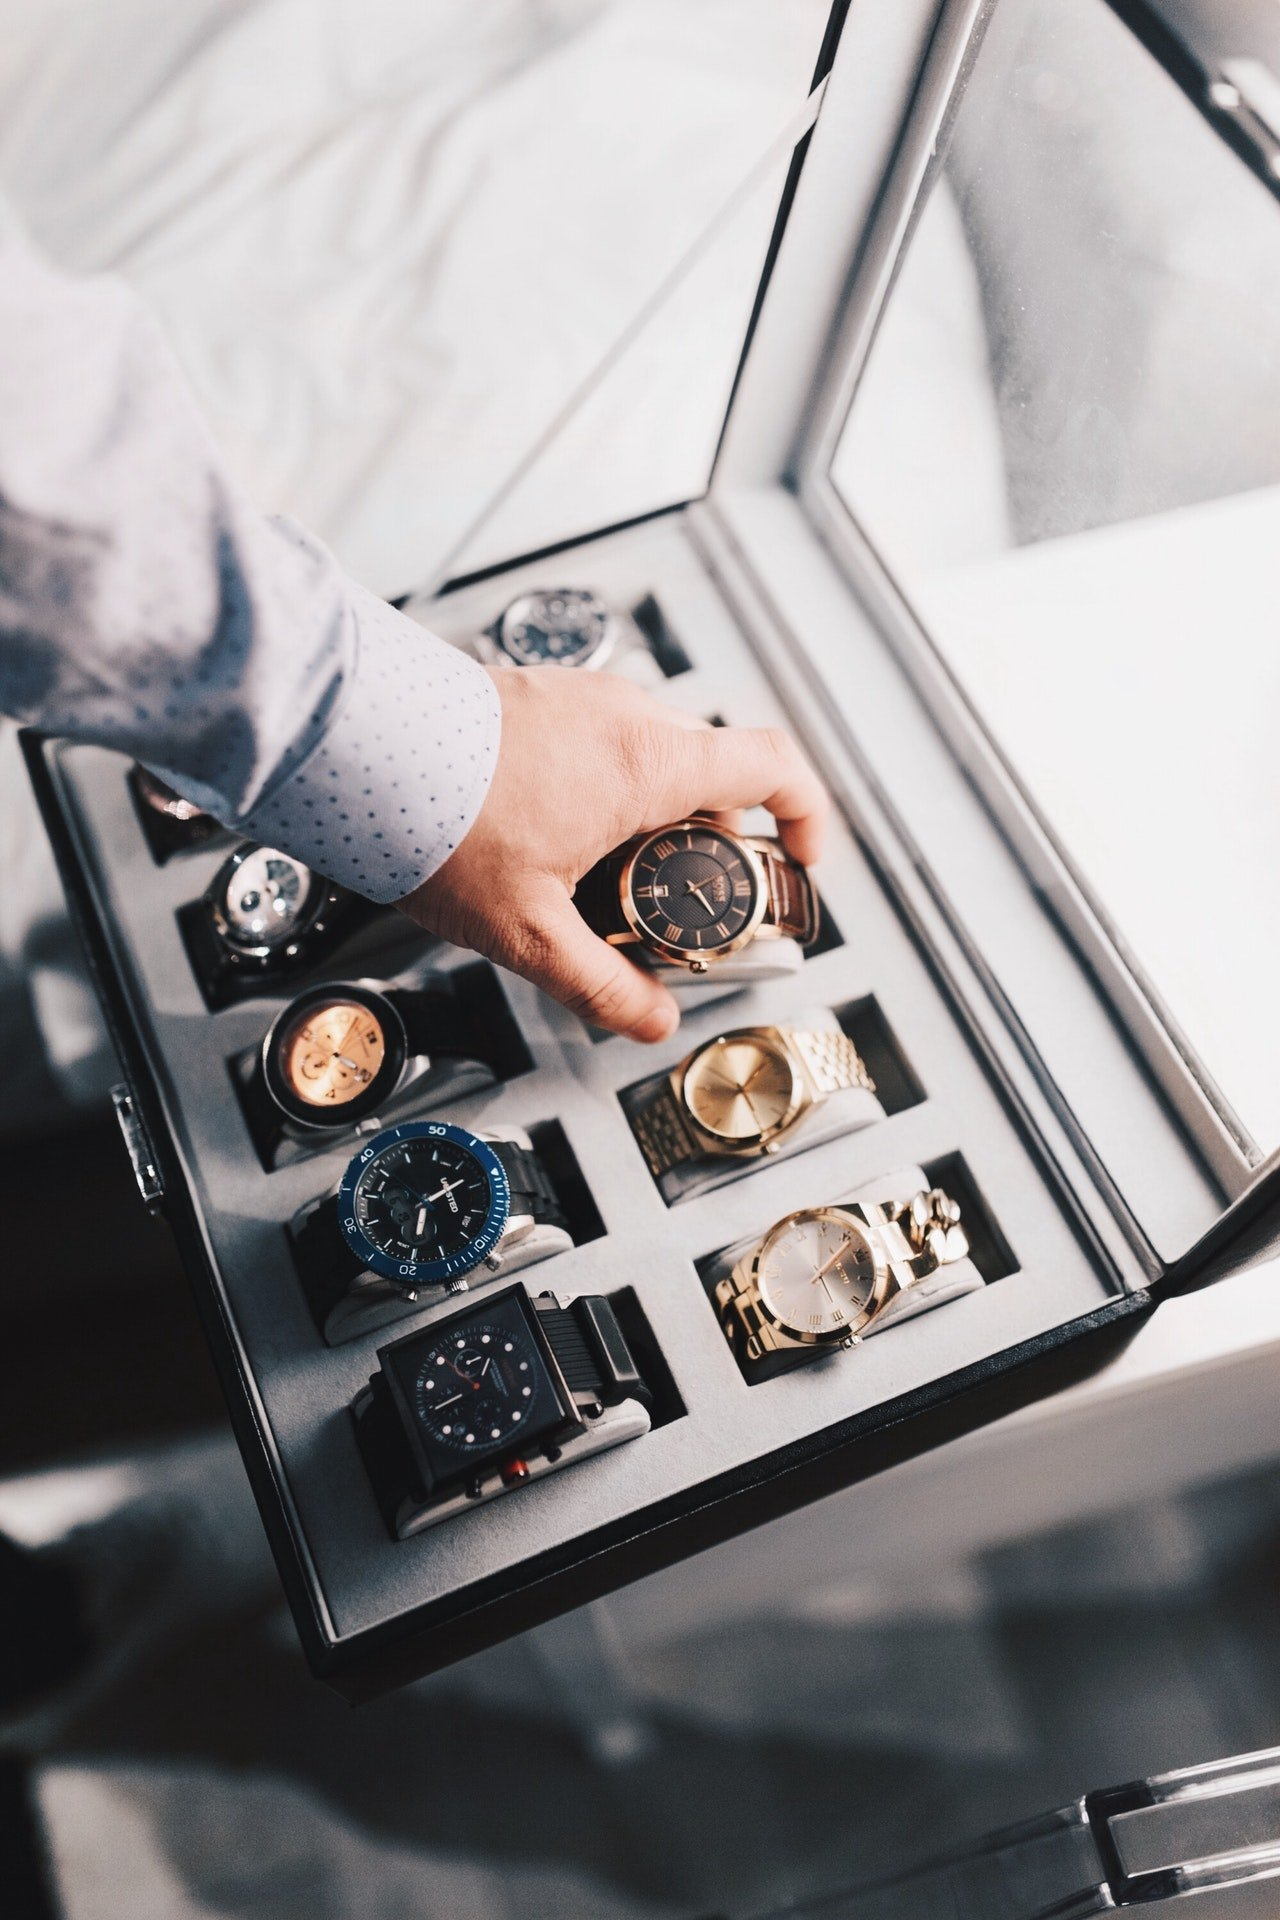 Collection of watches in a display case | Photo: Pexels